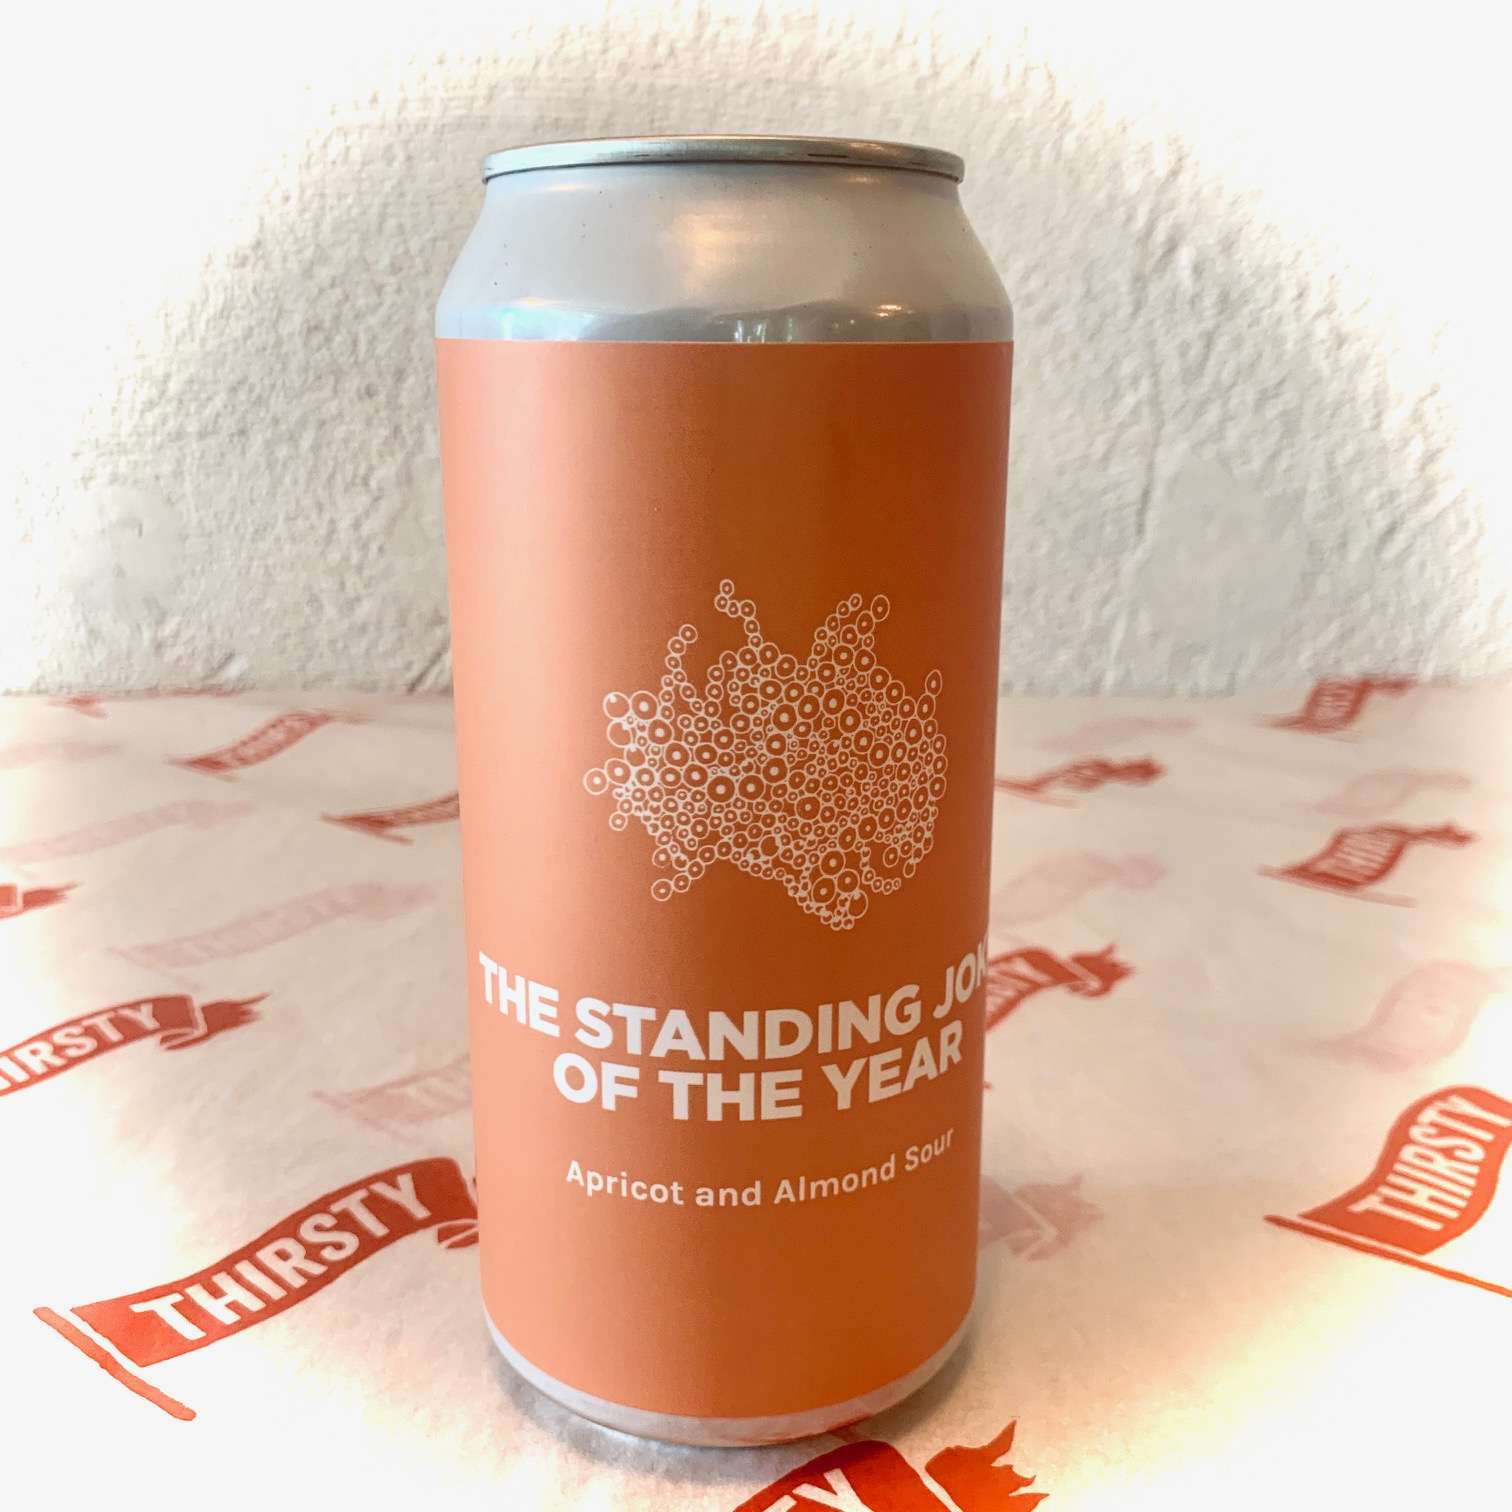 Pomona Island | THE STANDING JOKE OF THE YEAR | Apricot and Almond Sour 6.5% 440ml